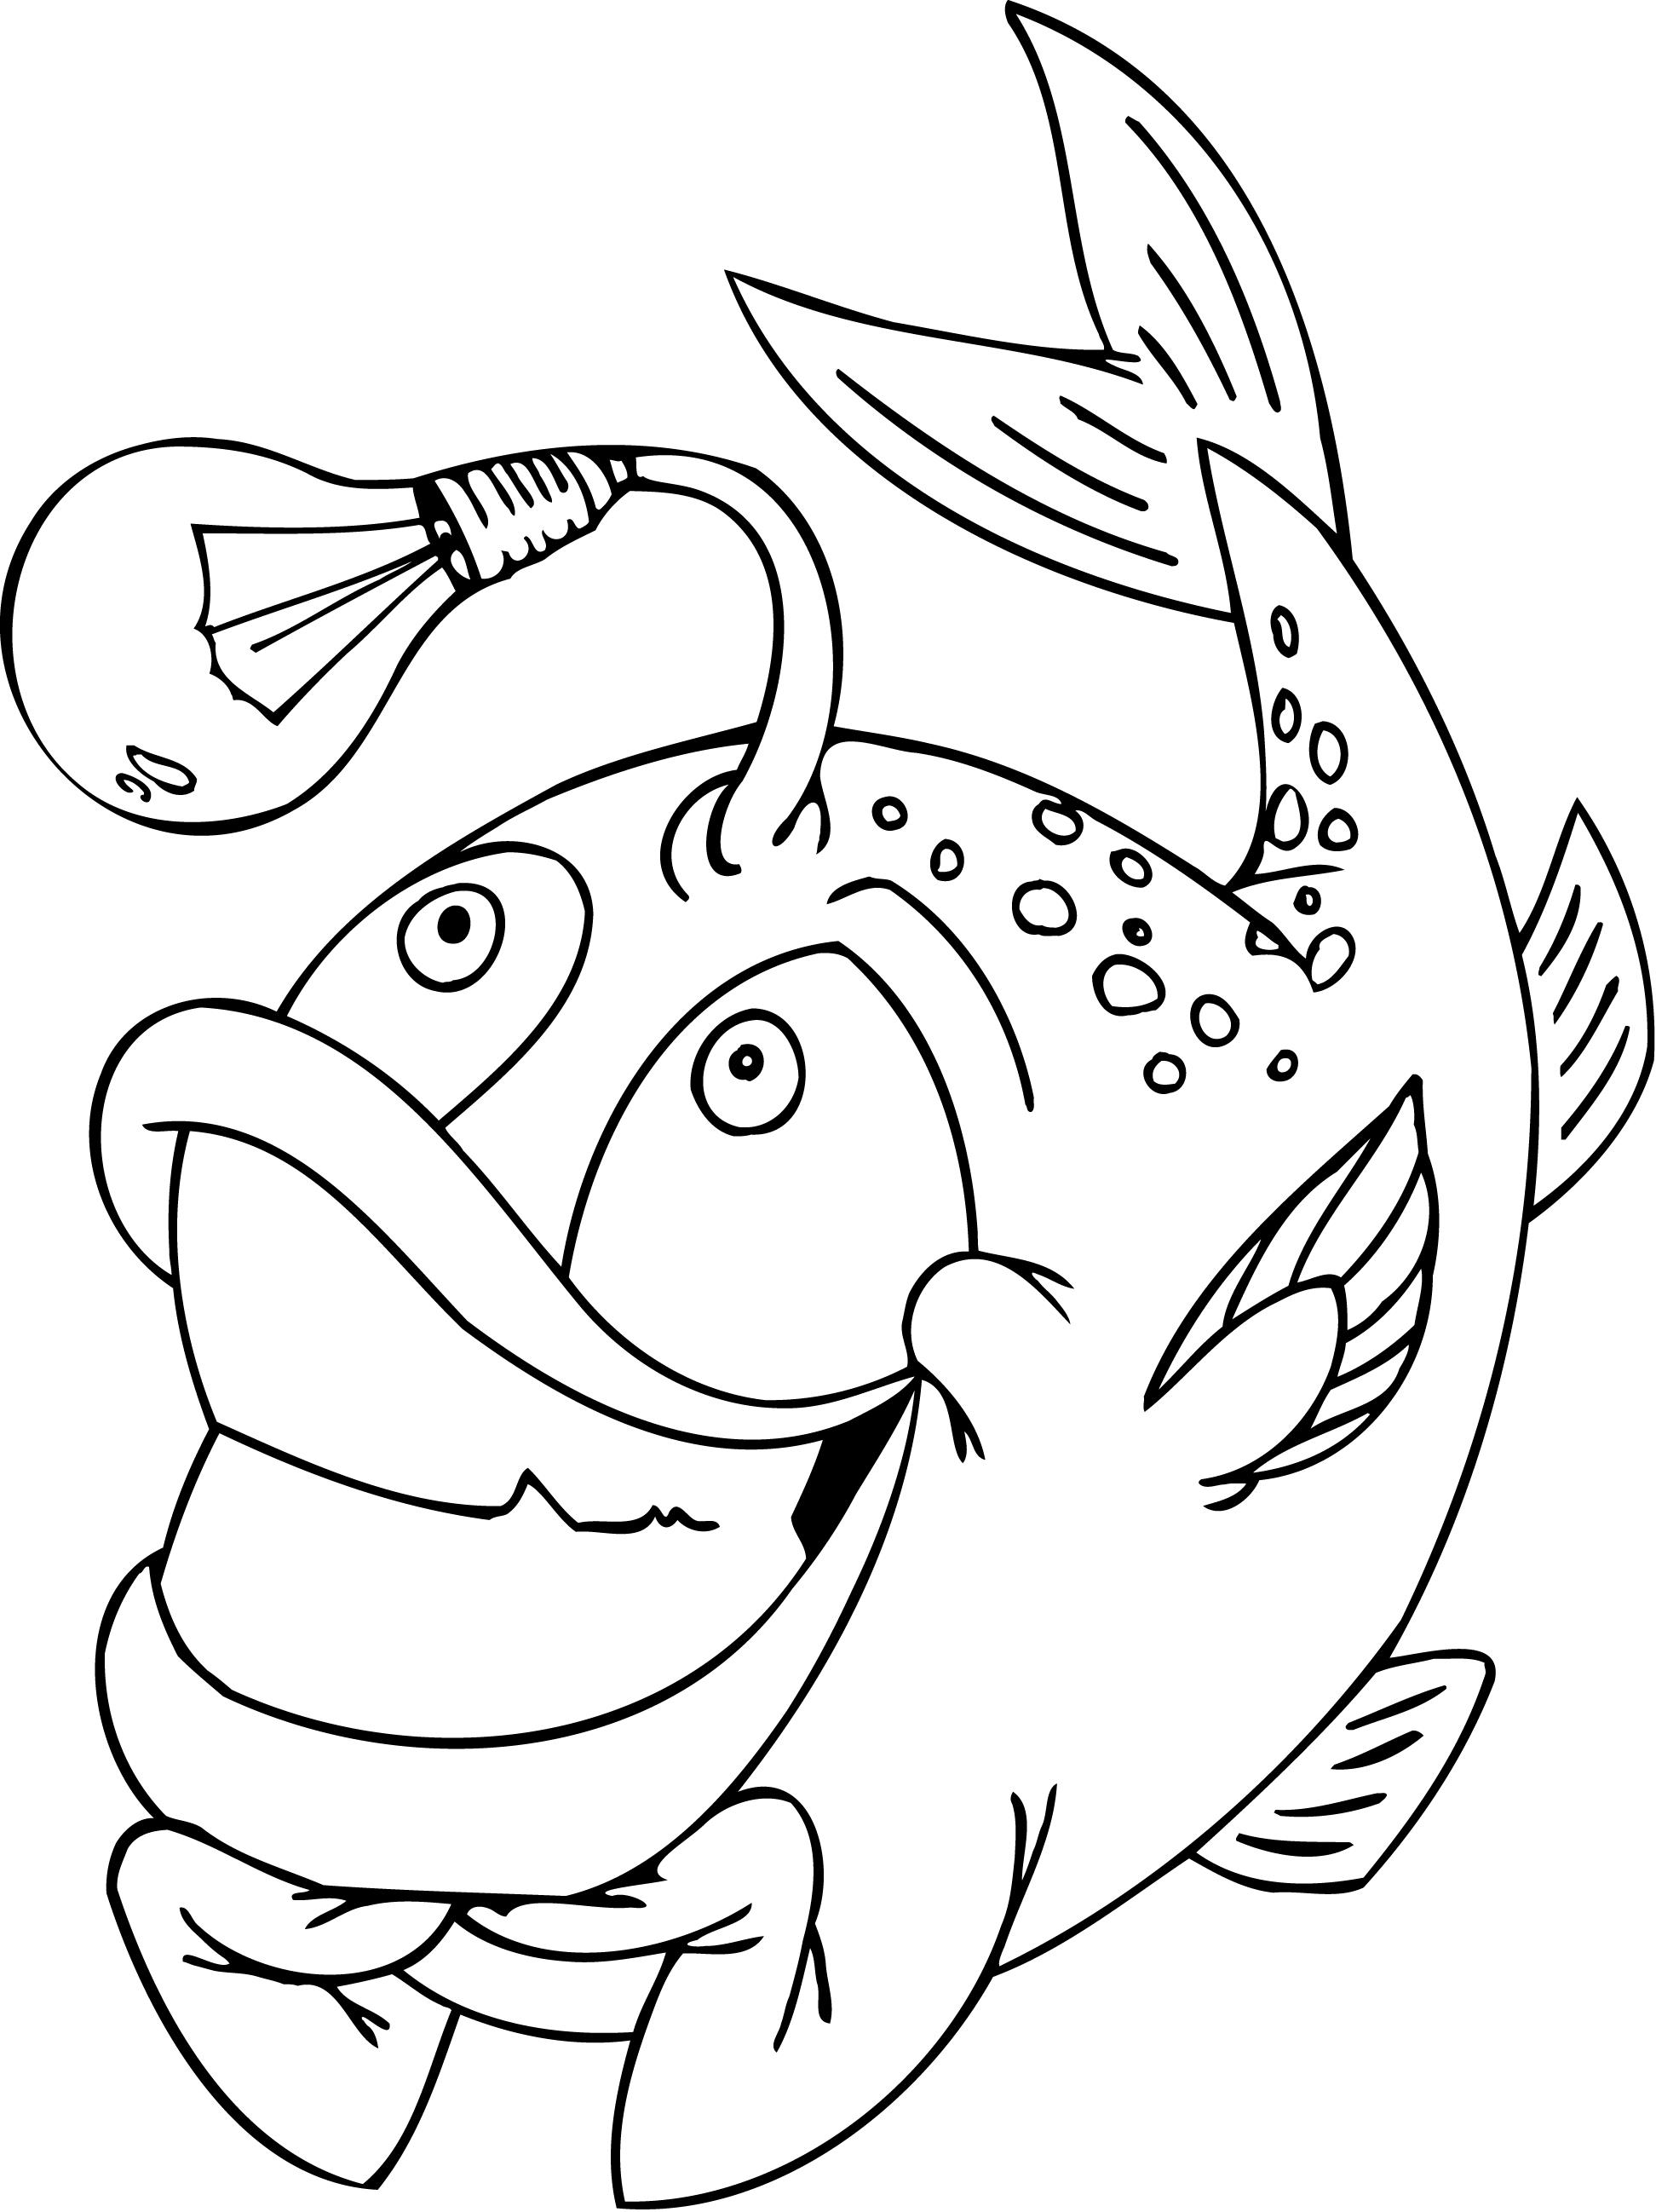 funny pictures to color free printable funny coloring pages for kids pictures to funny color 1 1